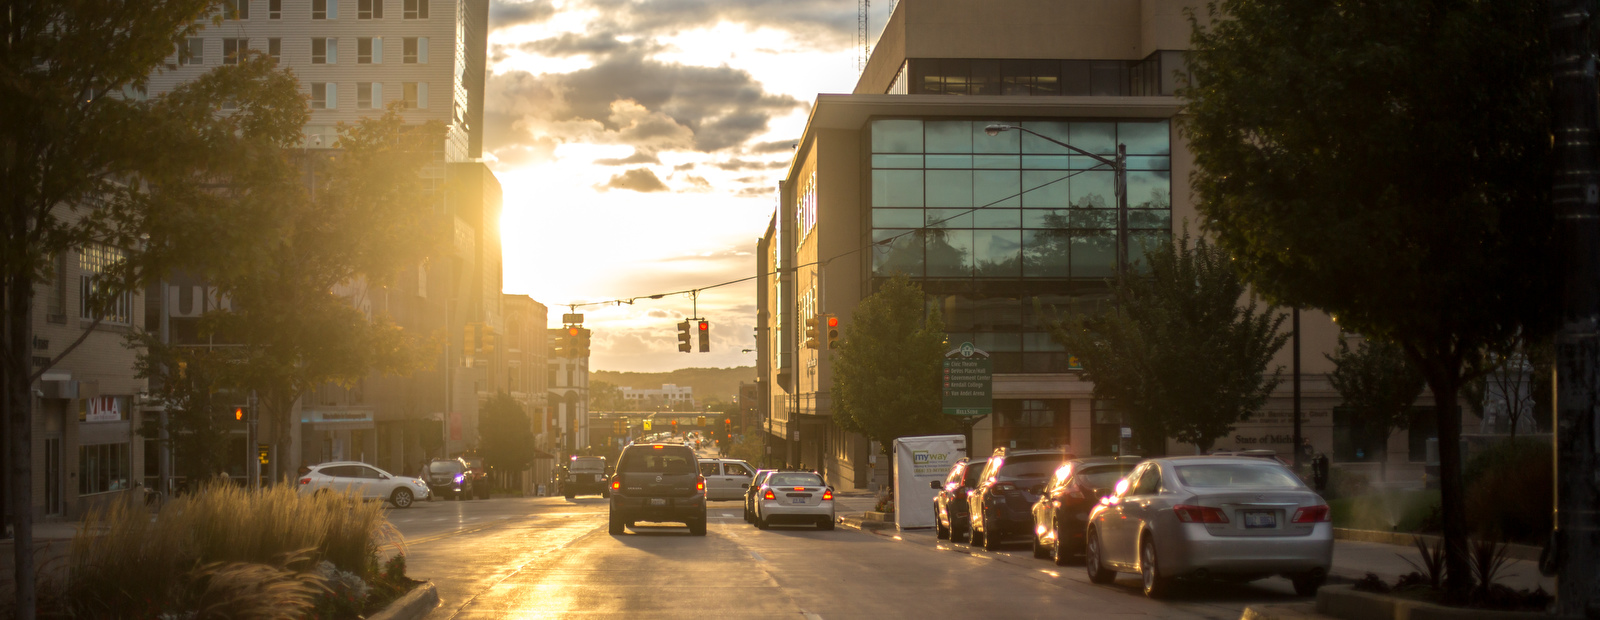 The sun sets over downtown as summer slips into fall.